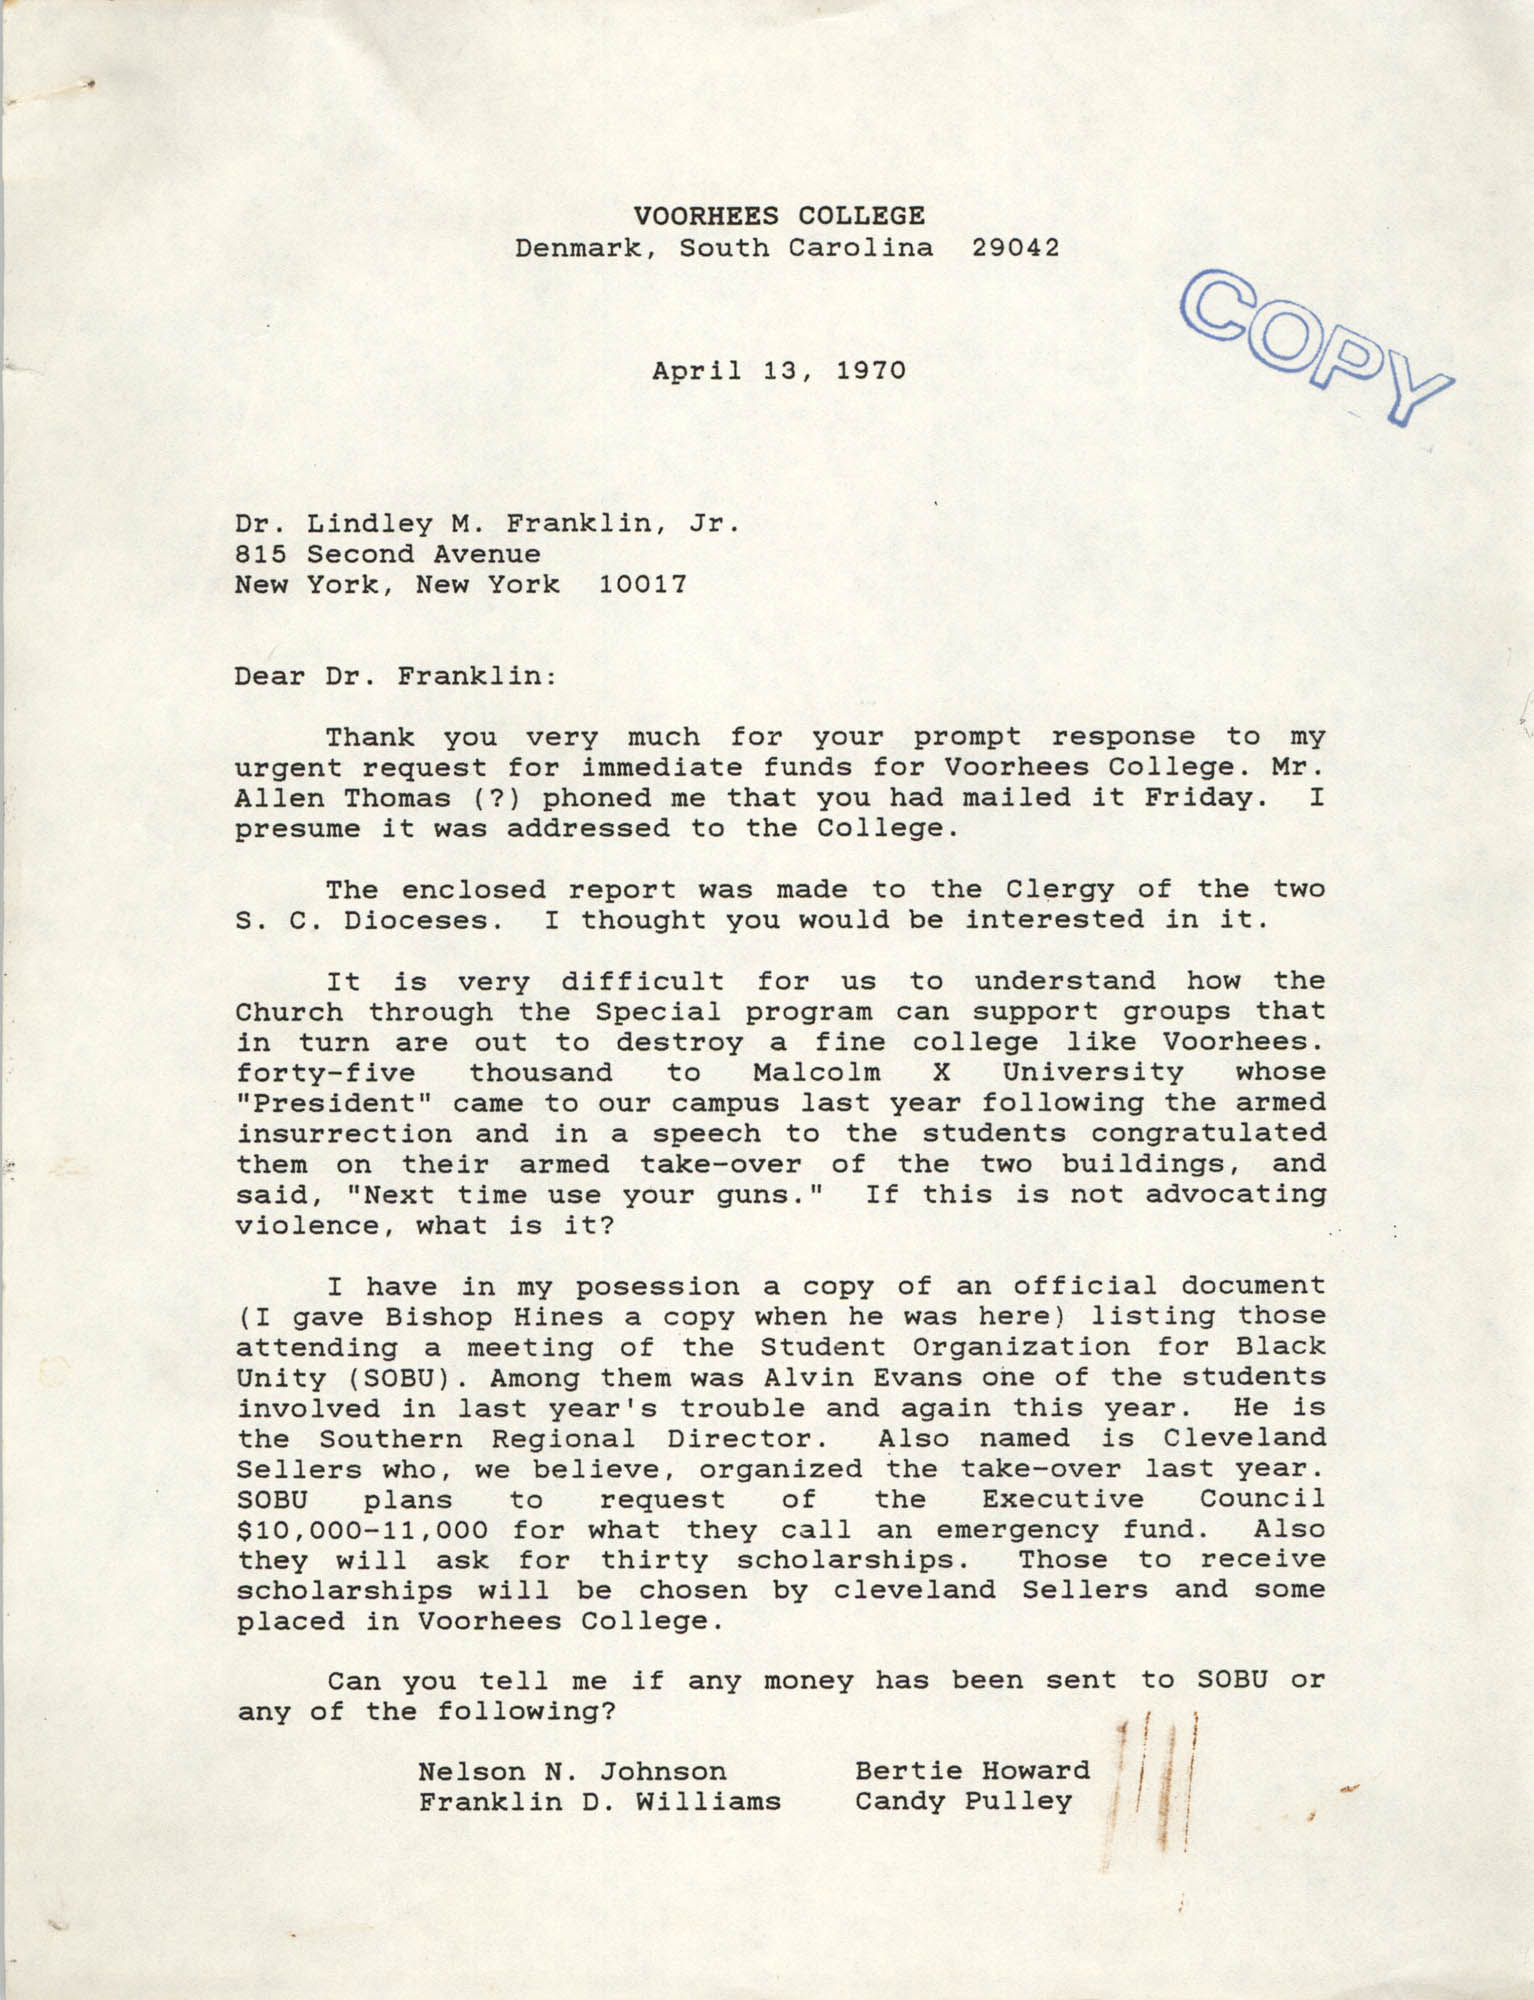 Letter from J. Kenneth Morris to Lindley M. Franklin, Jr., April 13, 1970